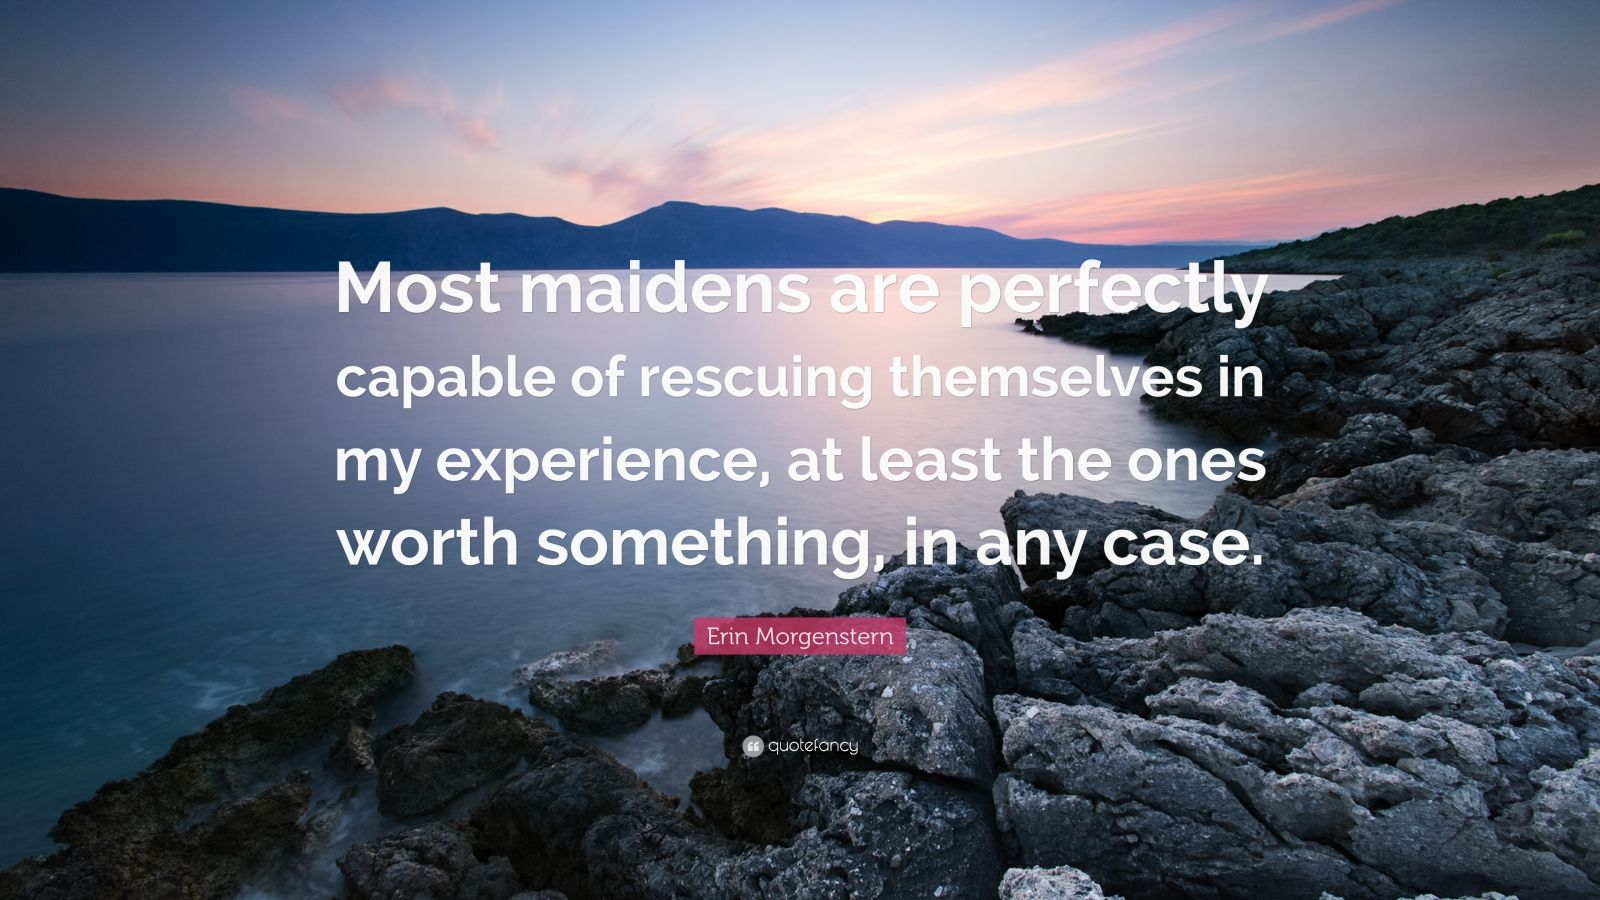 """Erin Morgenstern Quote: """"Most maidens are perfectly capable of rescuing themselves in my experience, at least the ones worth something, in any case."""""""